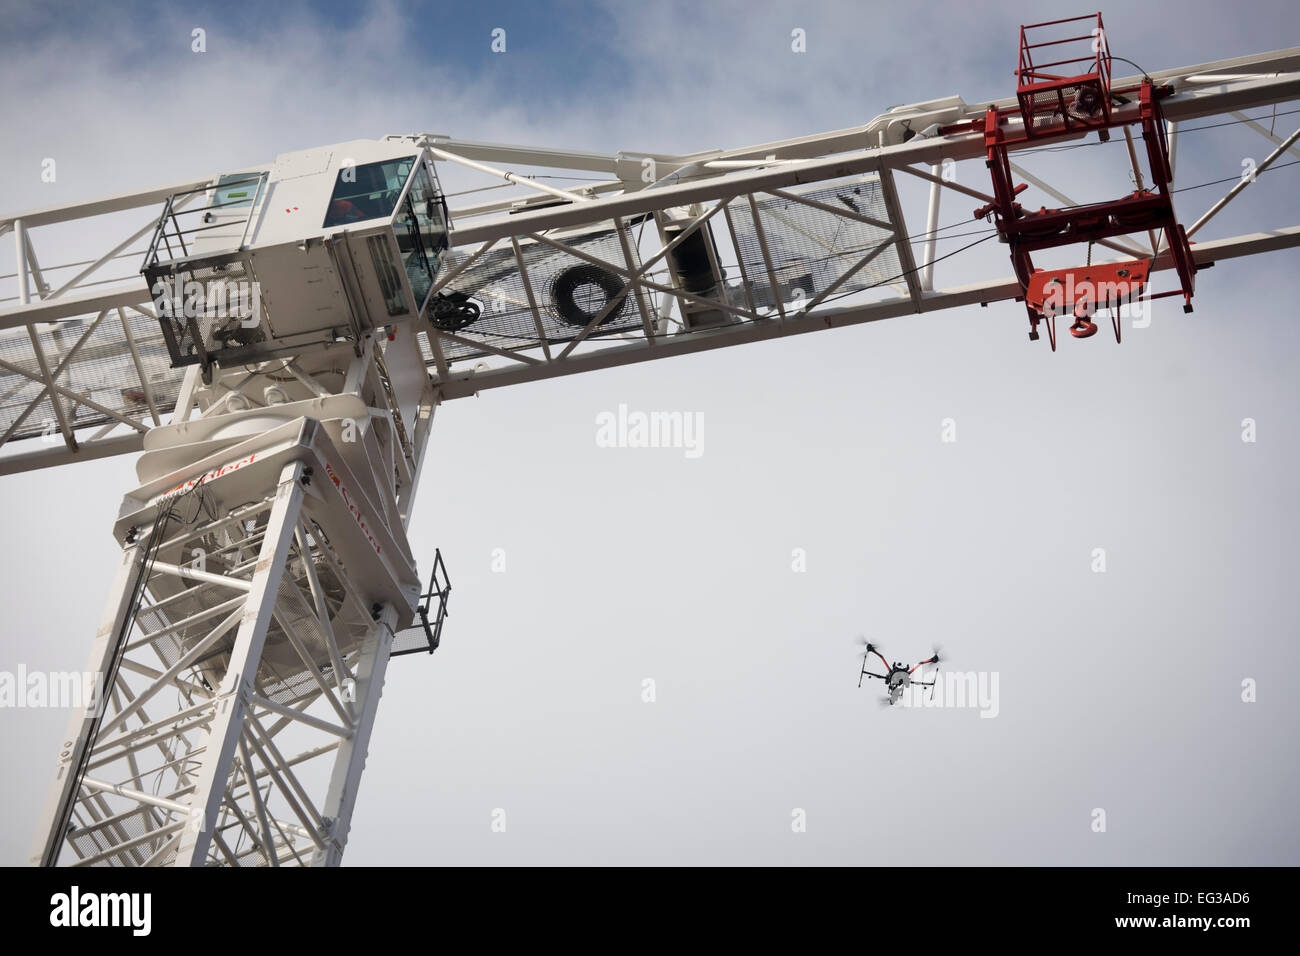 workmen-high-on-the-jib-of-a-crane-that-